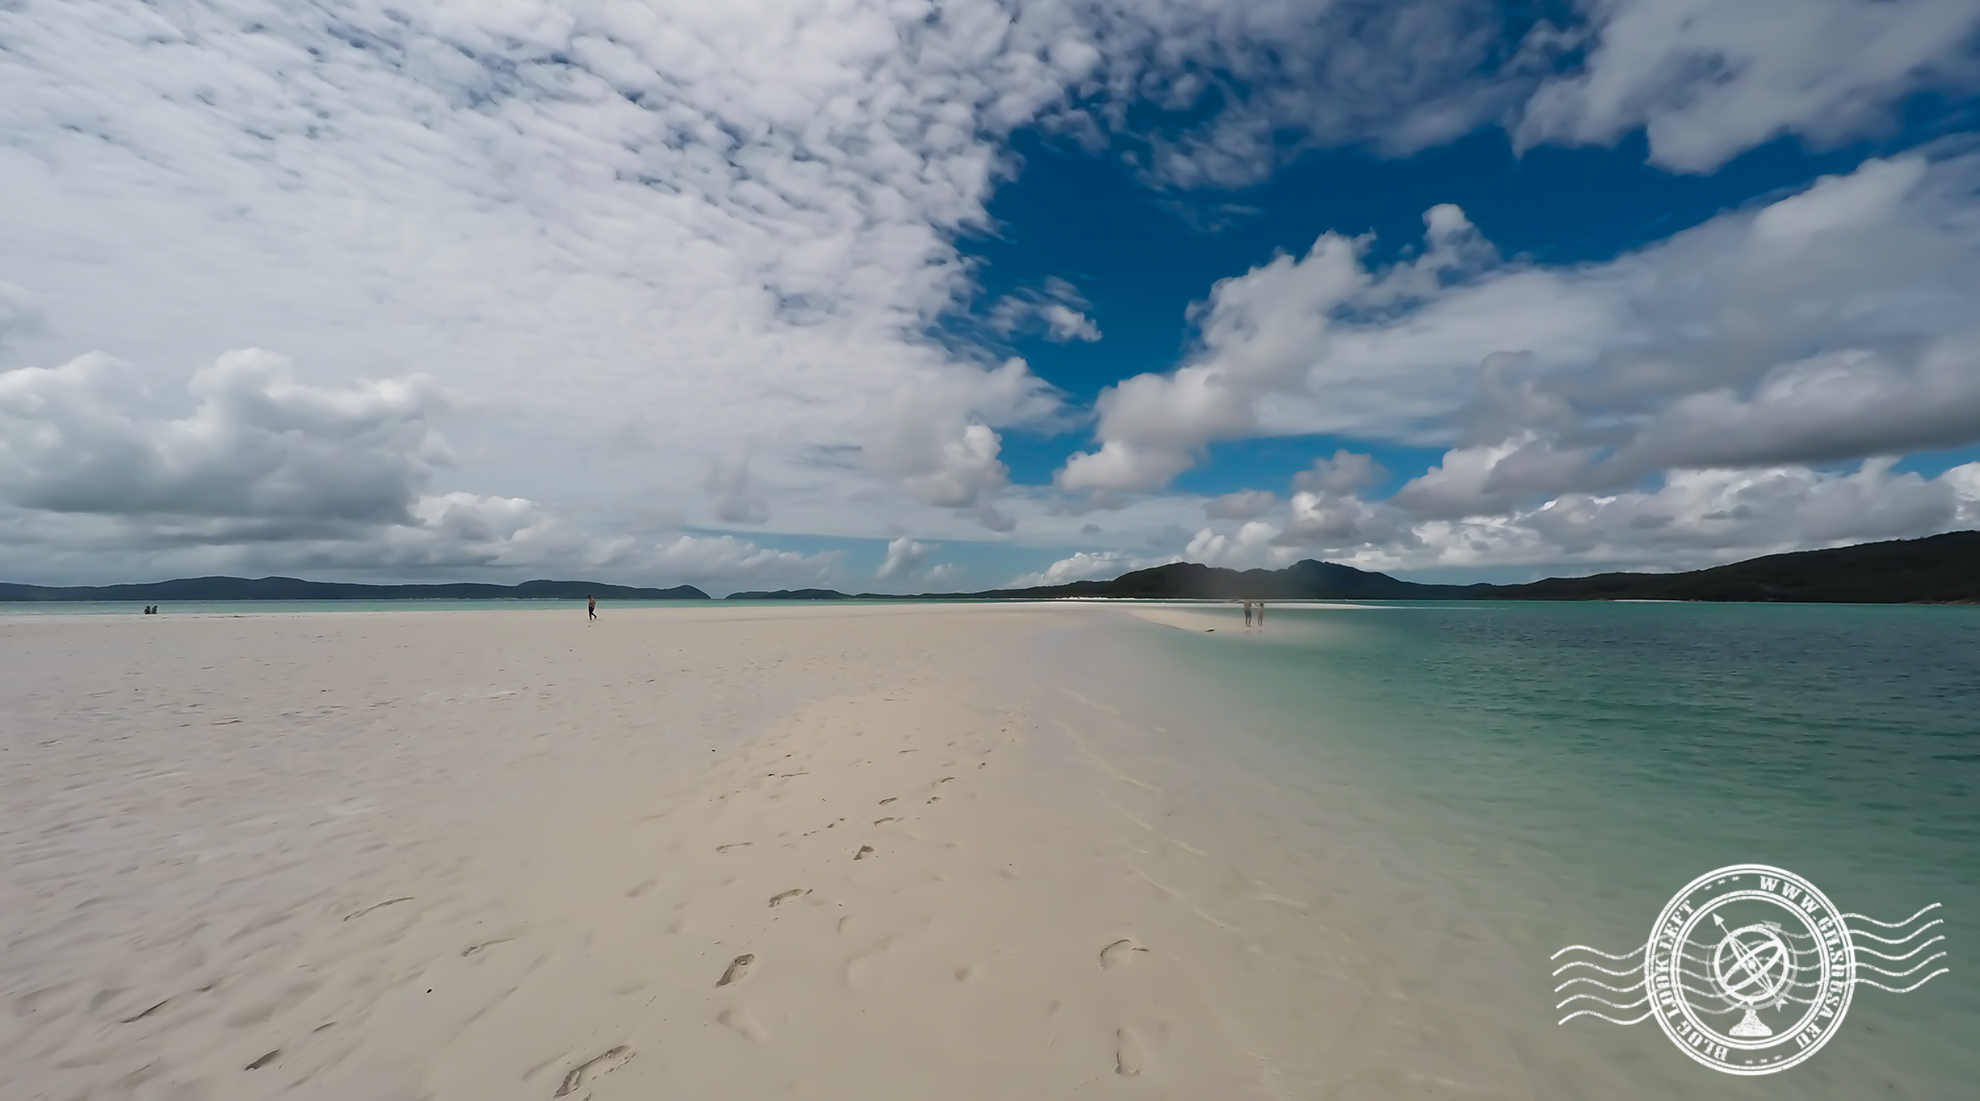 Vista na praia Whitehaven Beach